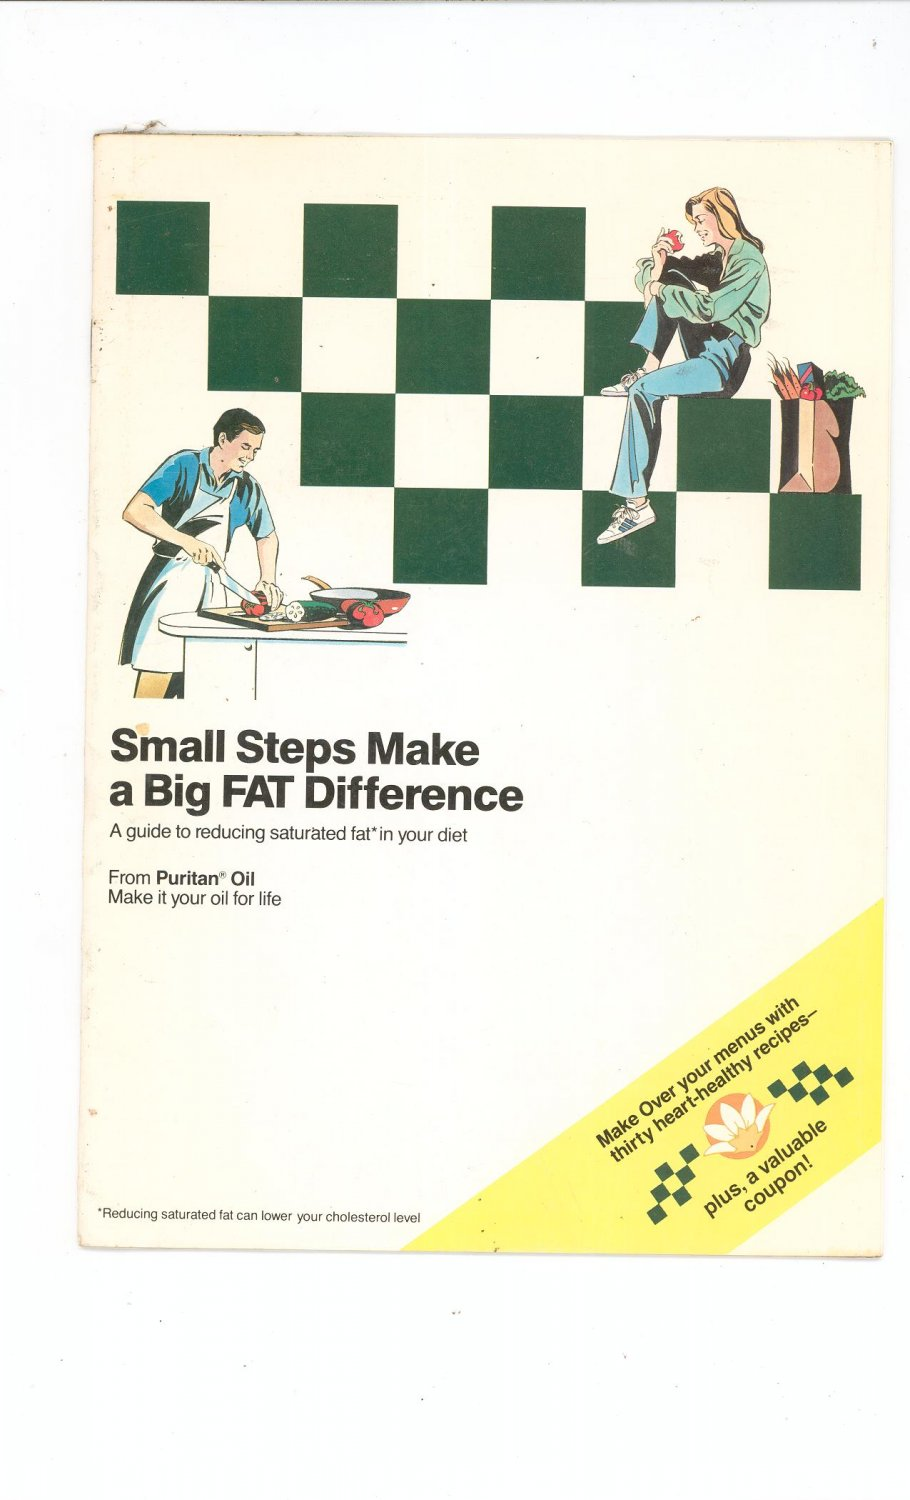 Small Steps Make A Big Fat Difference Cookbook / Guide by Puritan Oil 1989